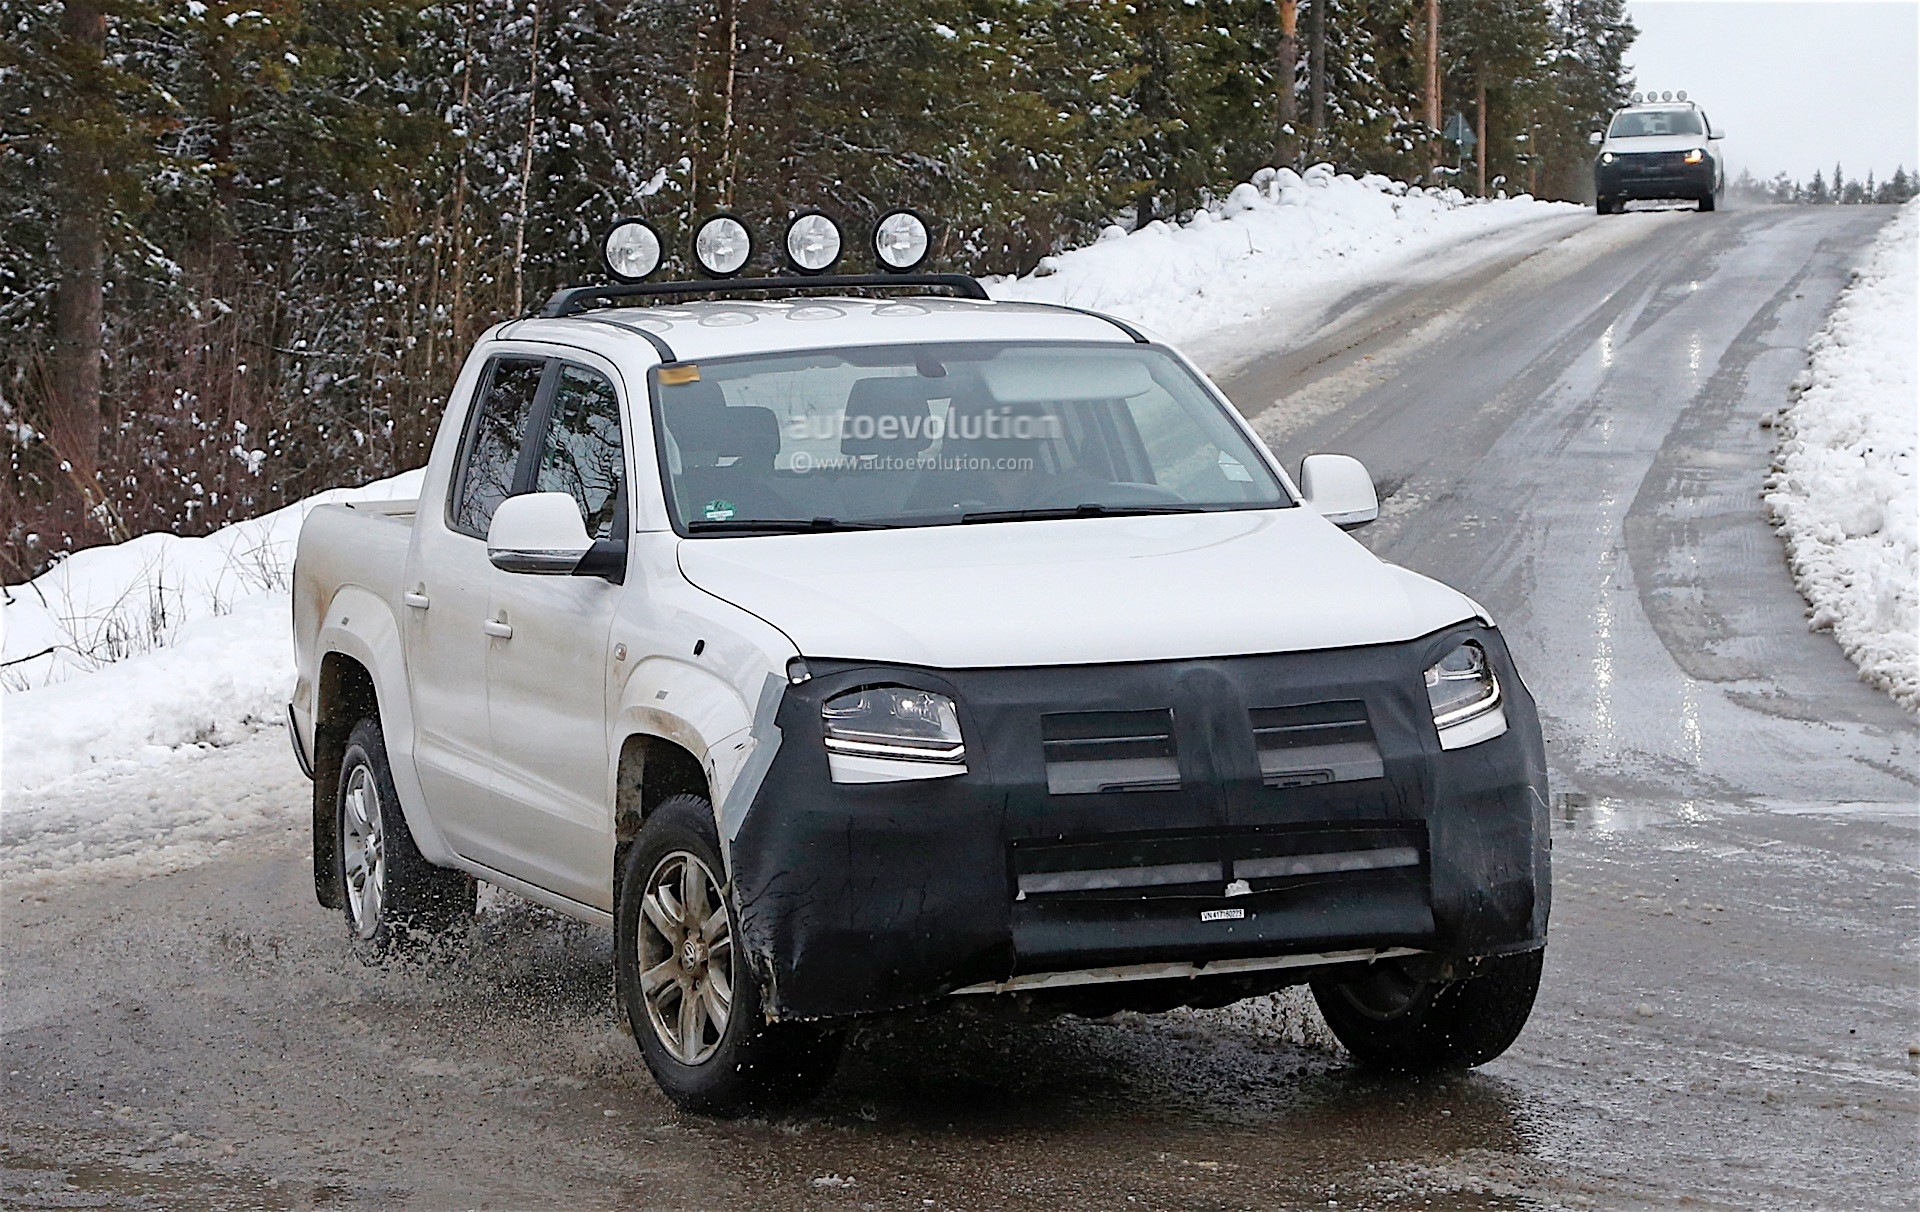 2017 volkswagen amarok spied testing in winter conditions. Black Bedroom Furniture Sets. Home Design Ideas